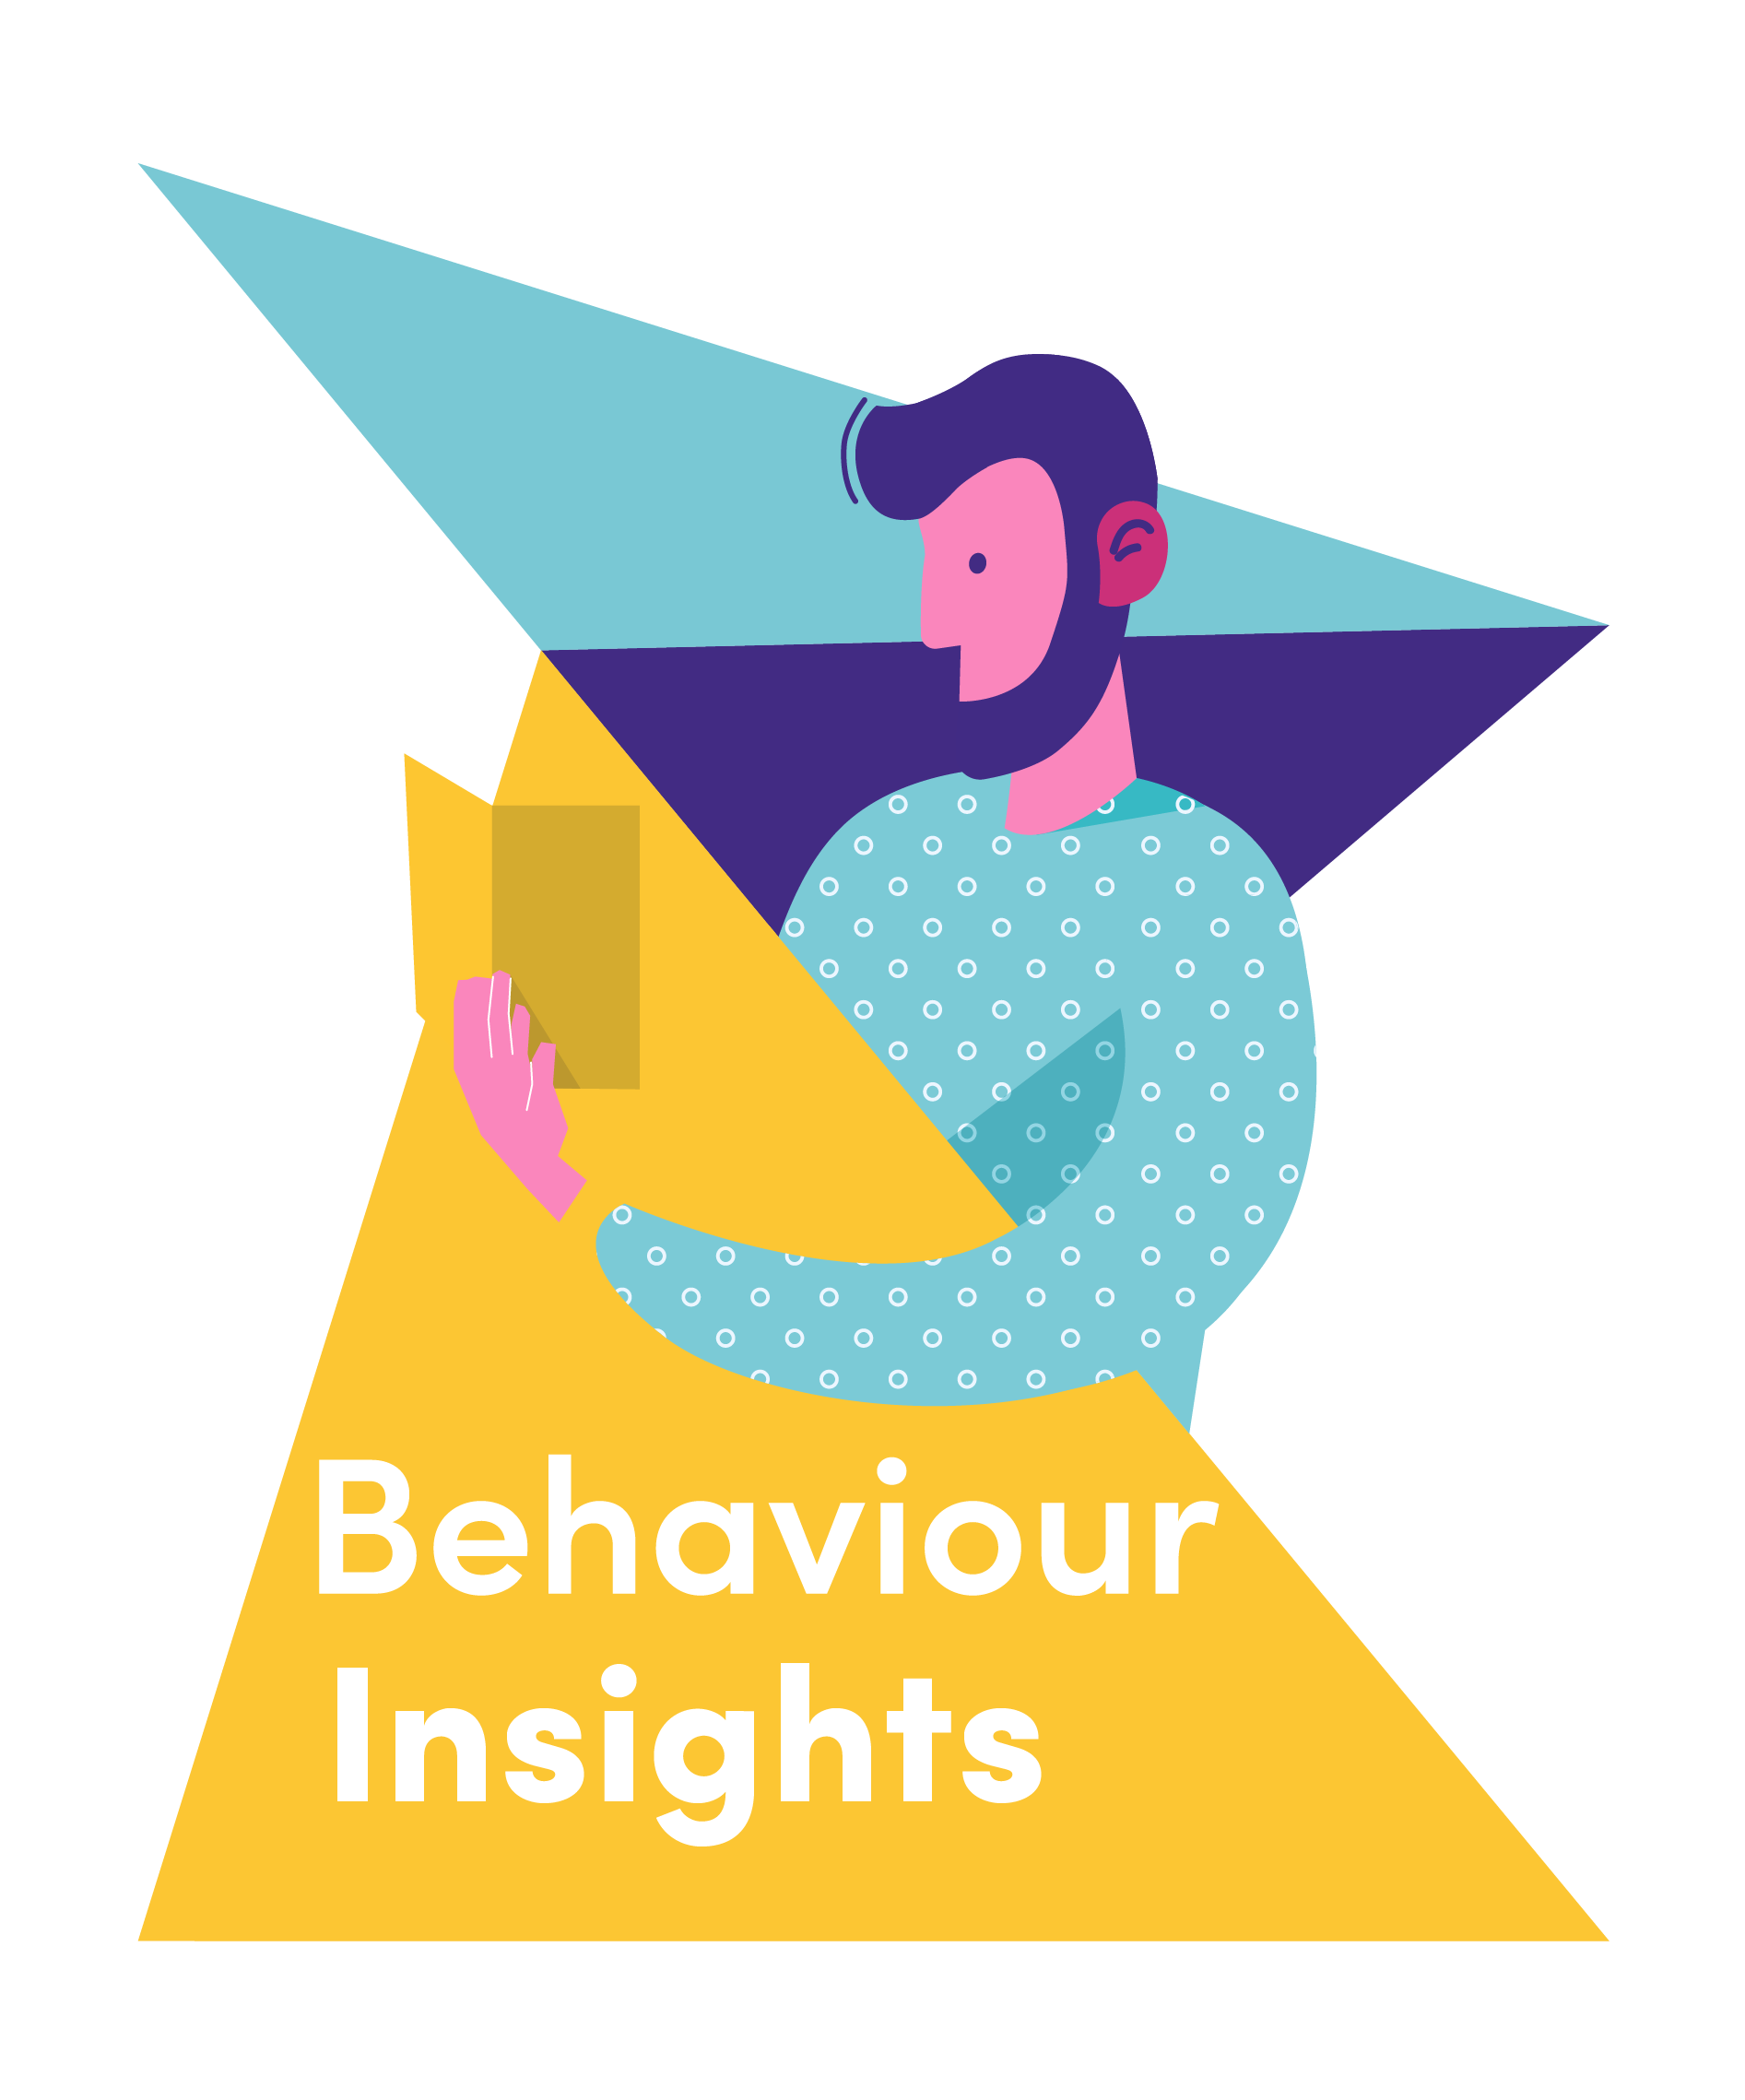 Insights and advice on how to build products using behavioural science. Get clarity, drive innovation and affect behaviour change.